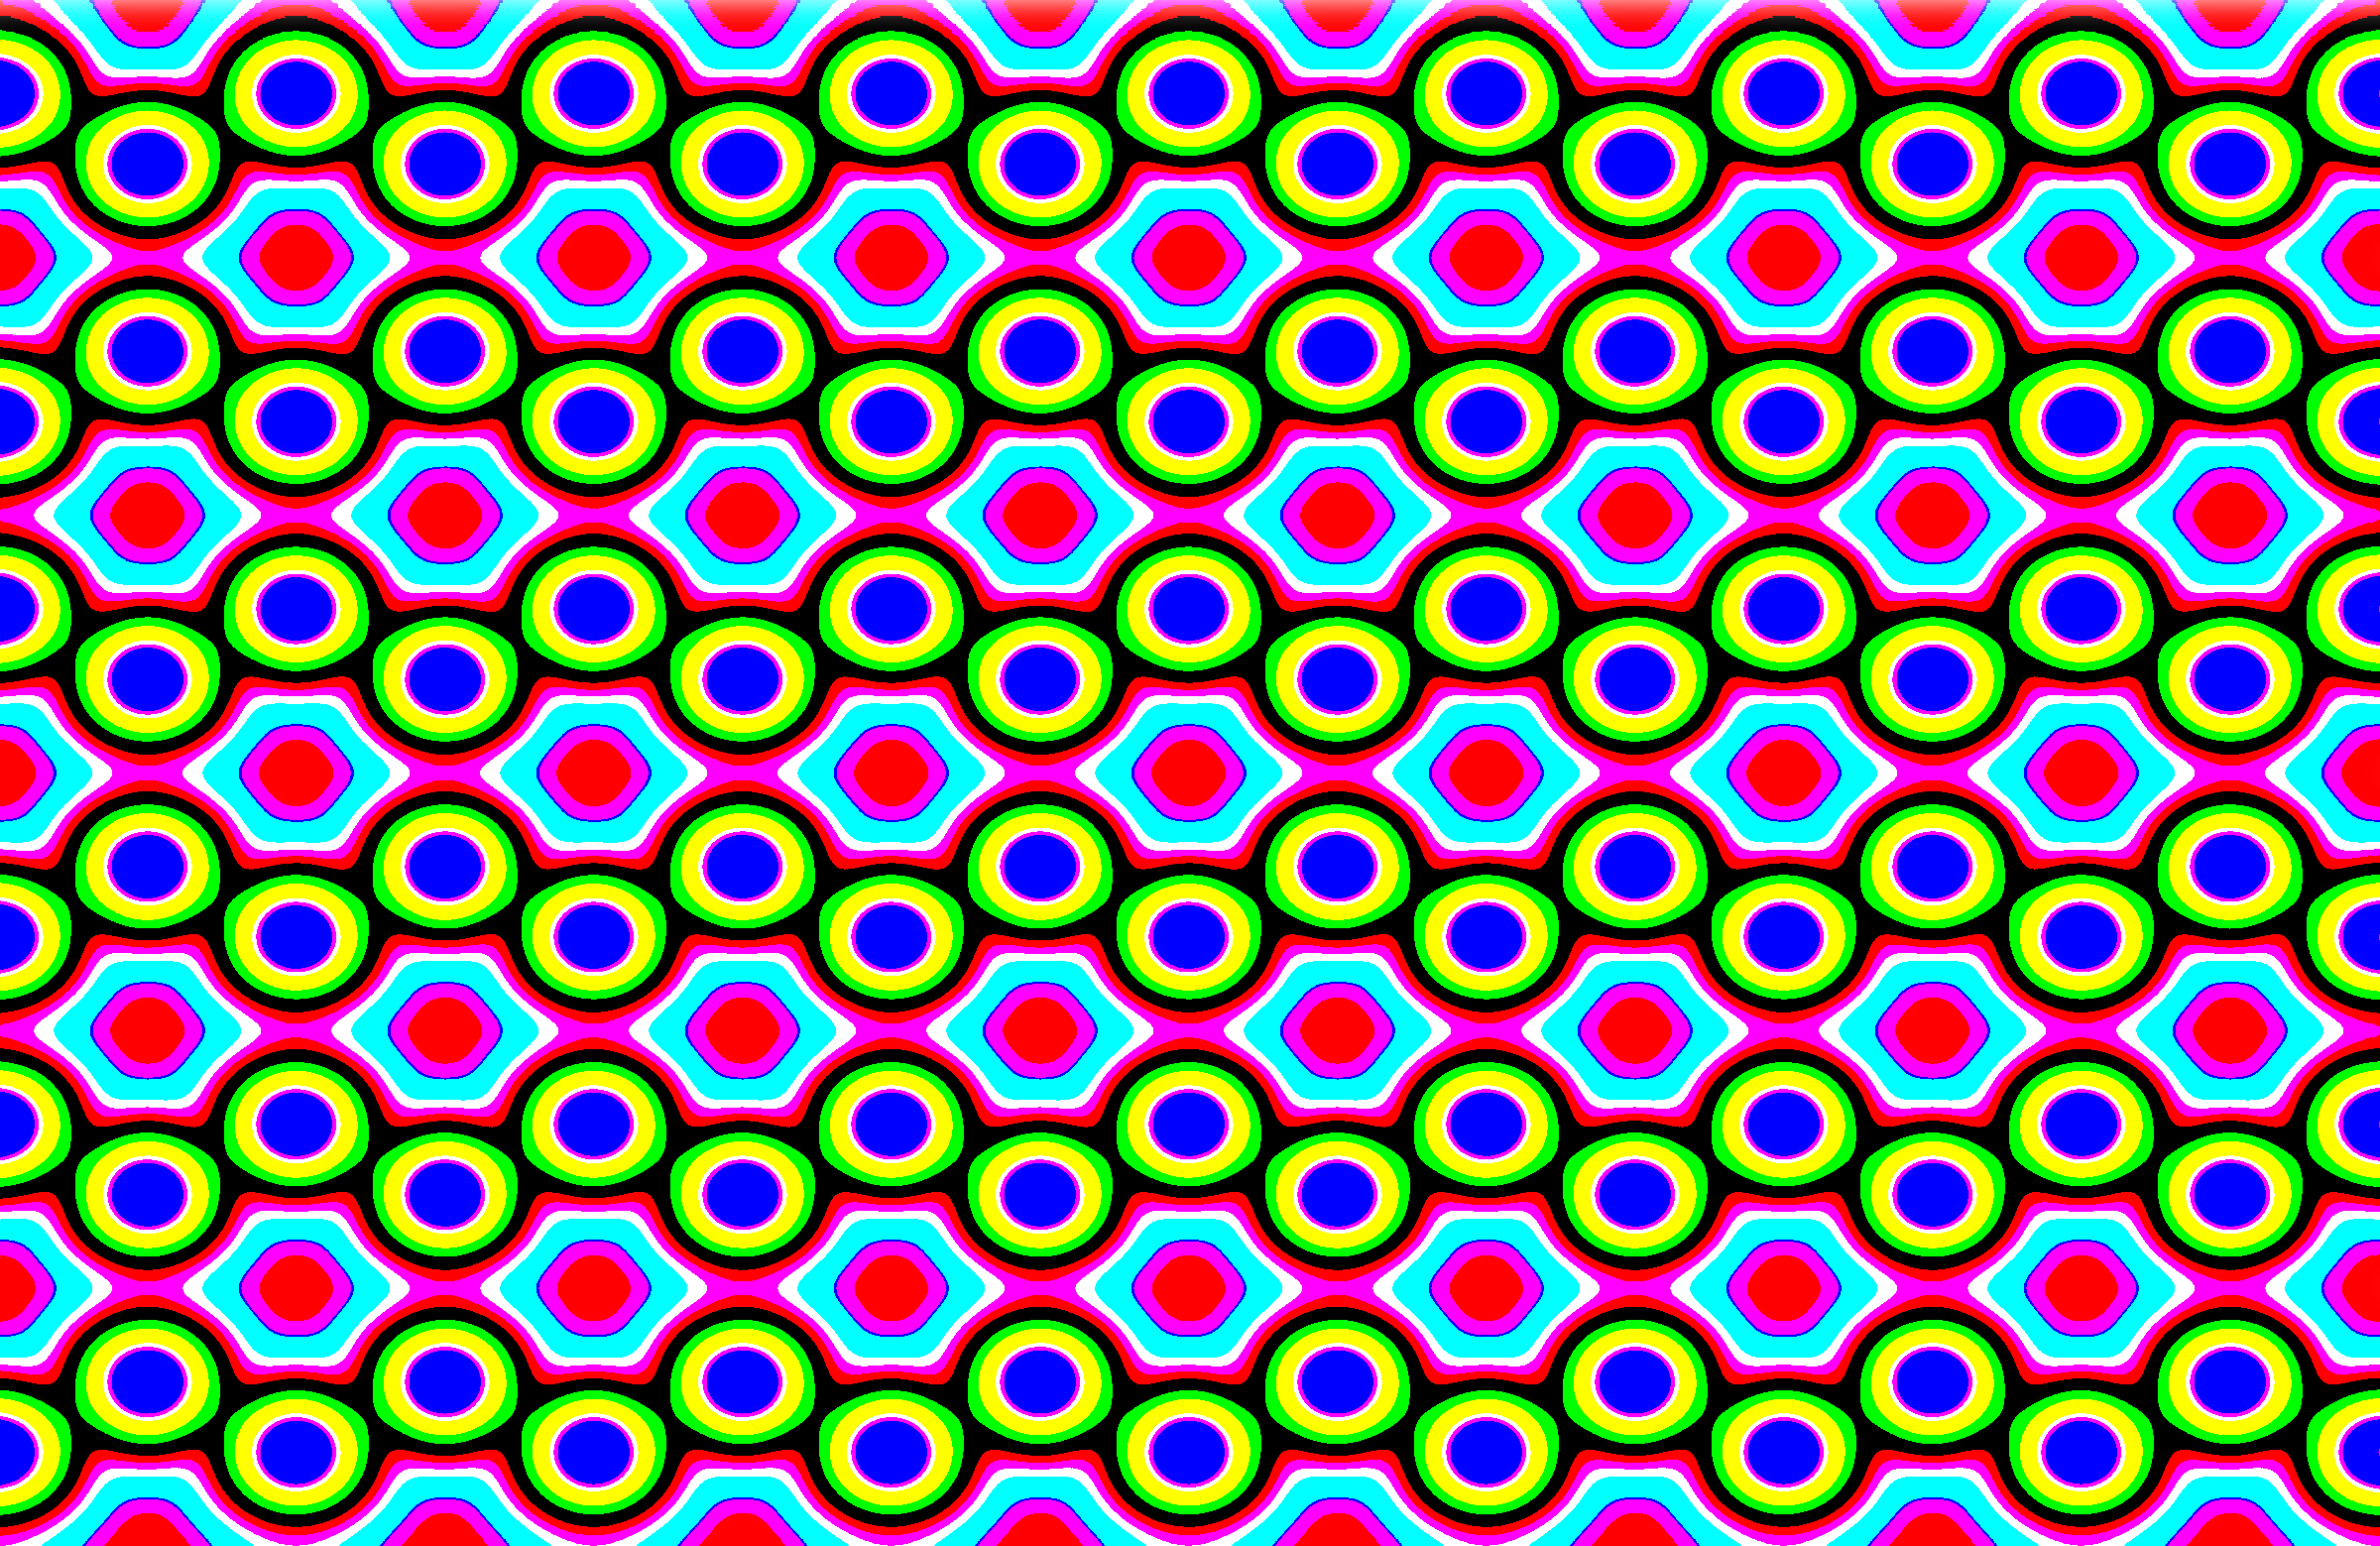 Background pattern 91 (colour 2) by Firkin